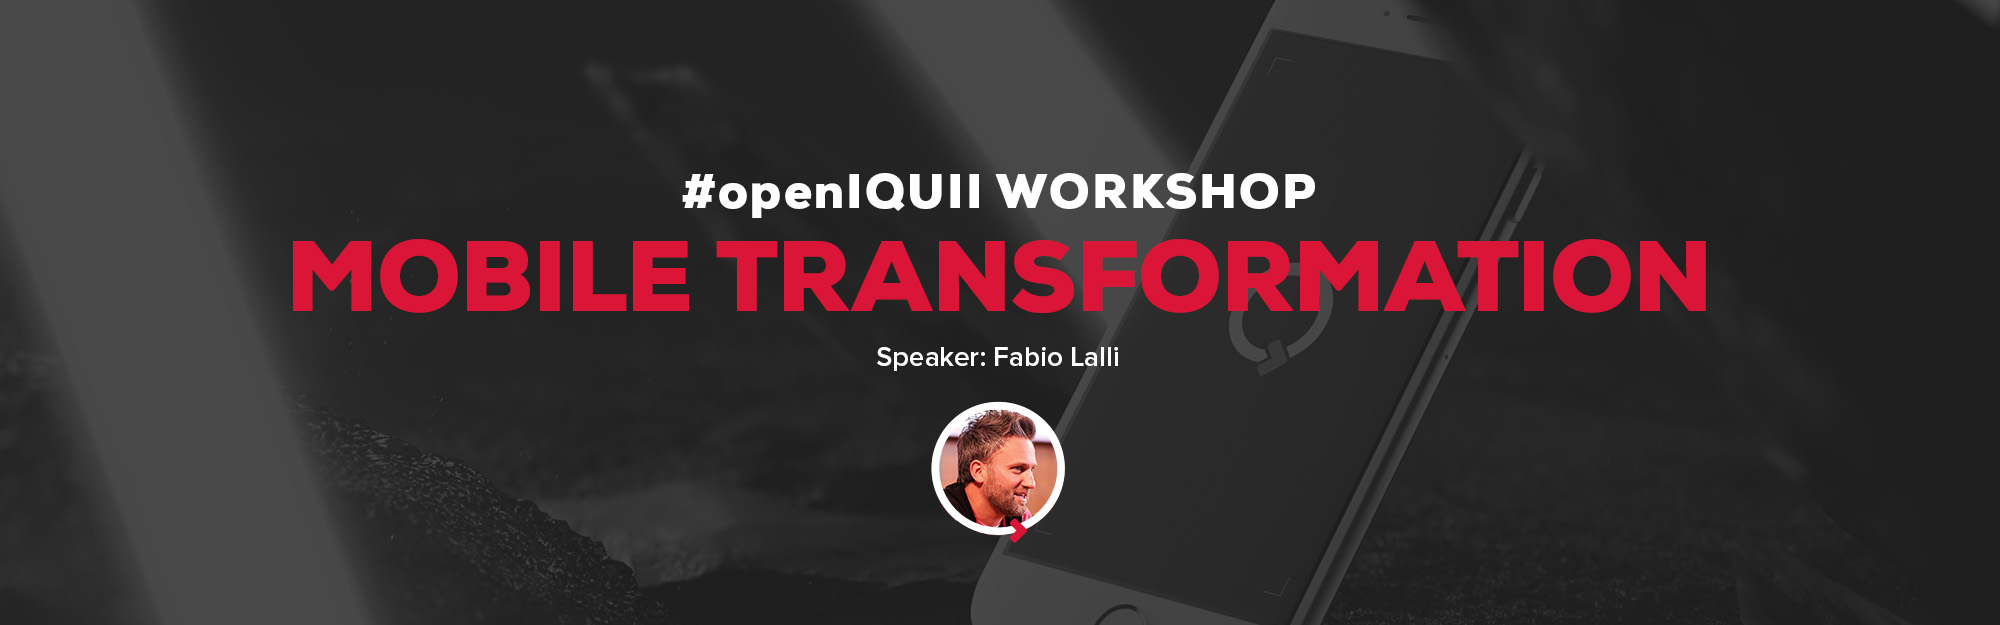 #openIQUII – Workshop Mobile Transformation